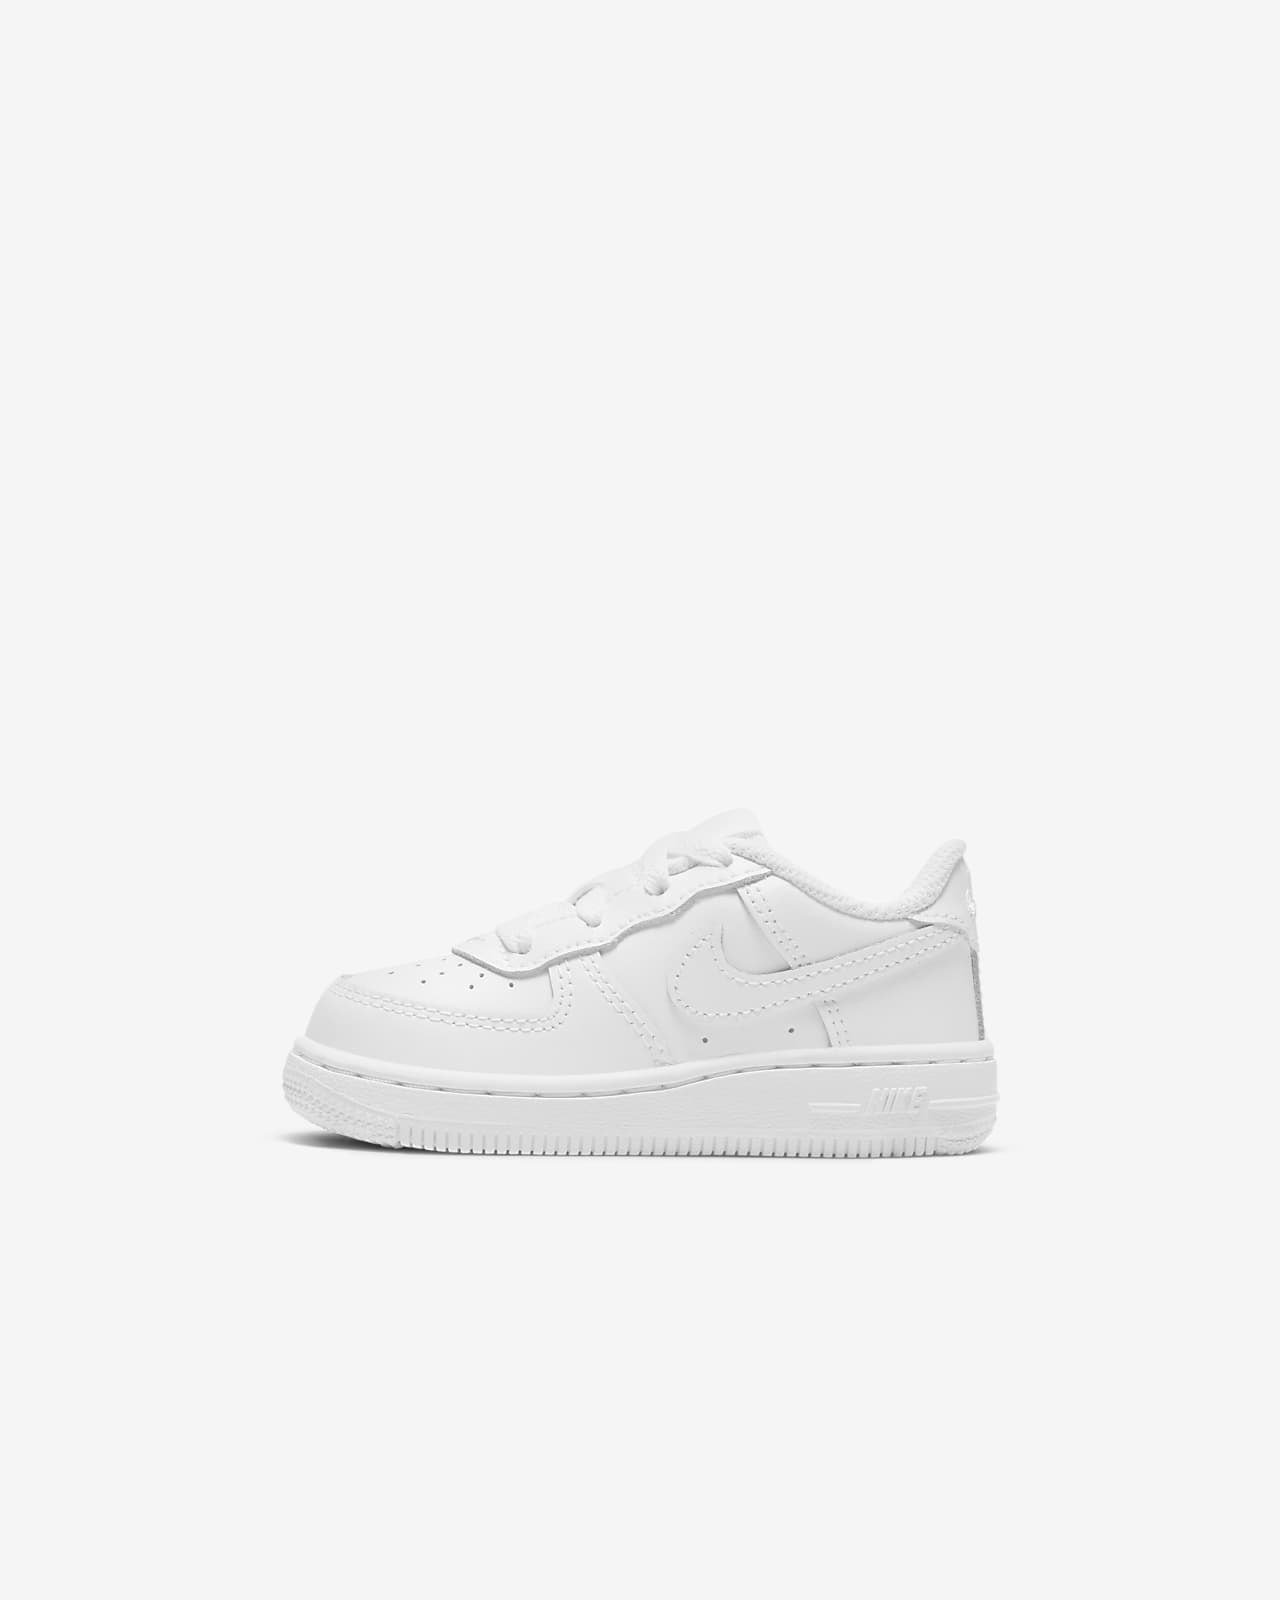 Nike Force 1 LE 嬰幼兒鞋款